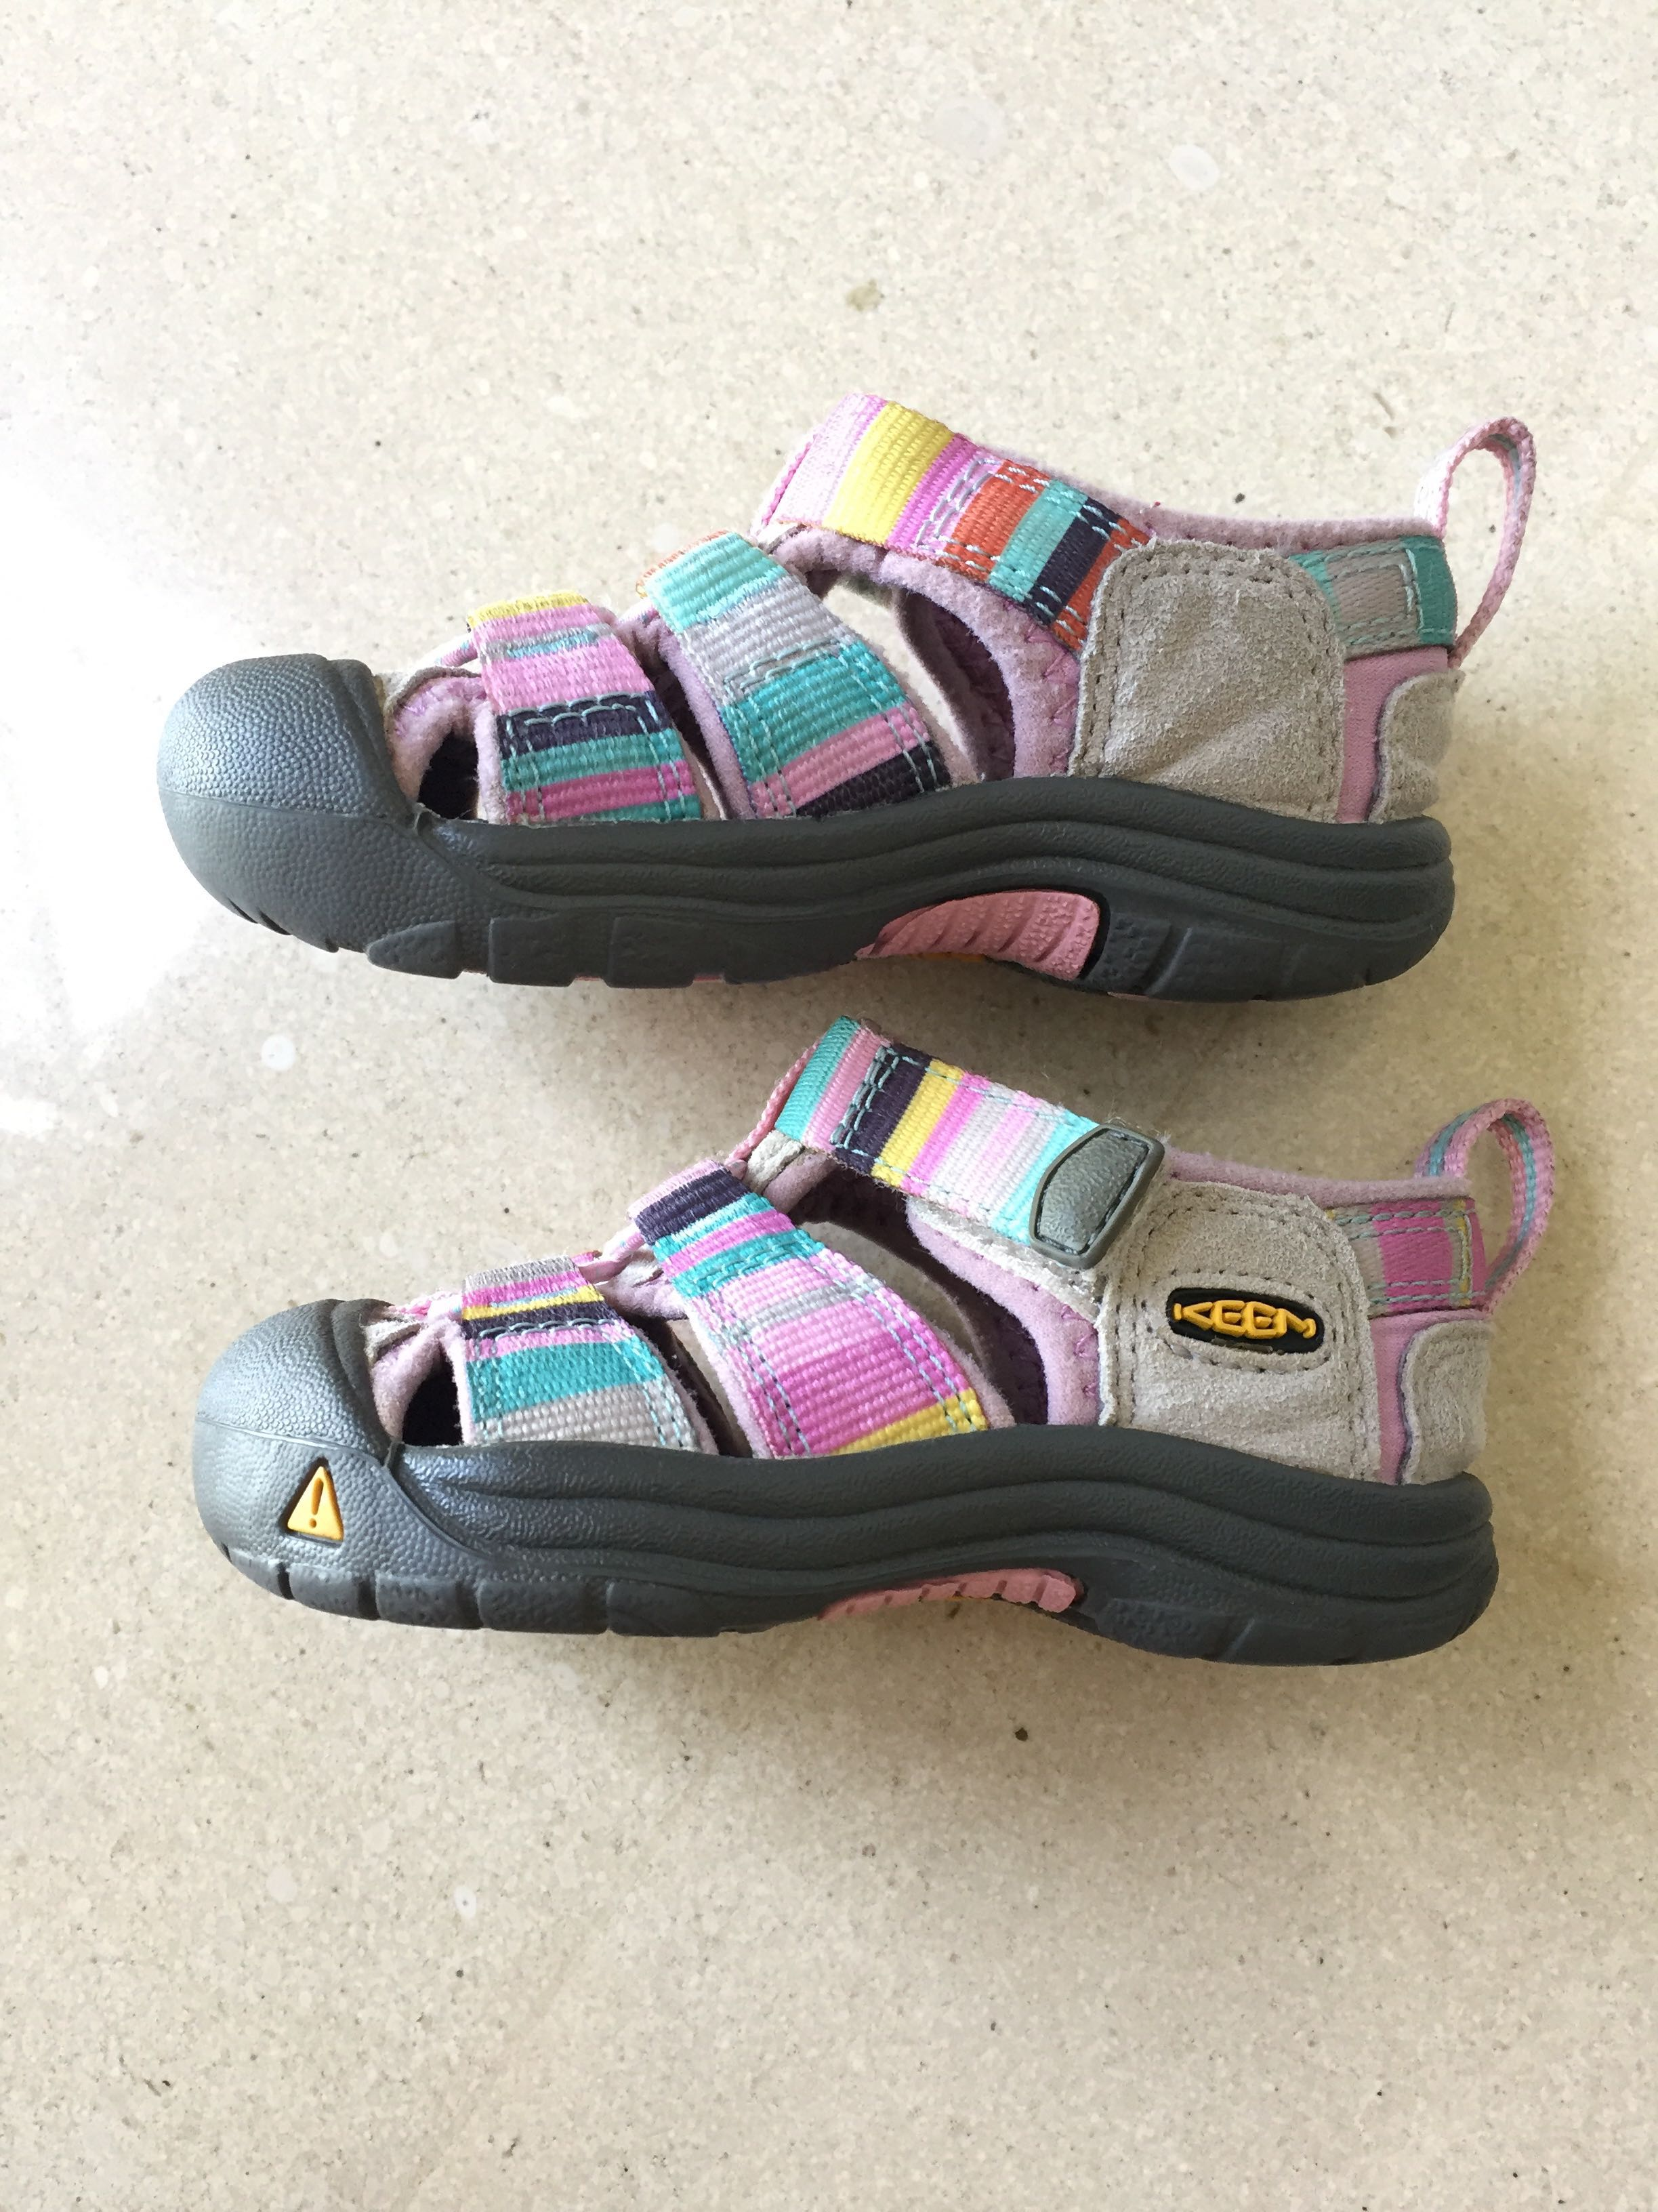 6447c6220a0e Keen US5 (1-2yo) baby girl shoes authentic